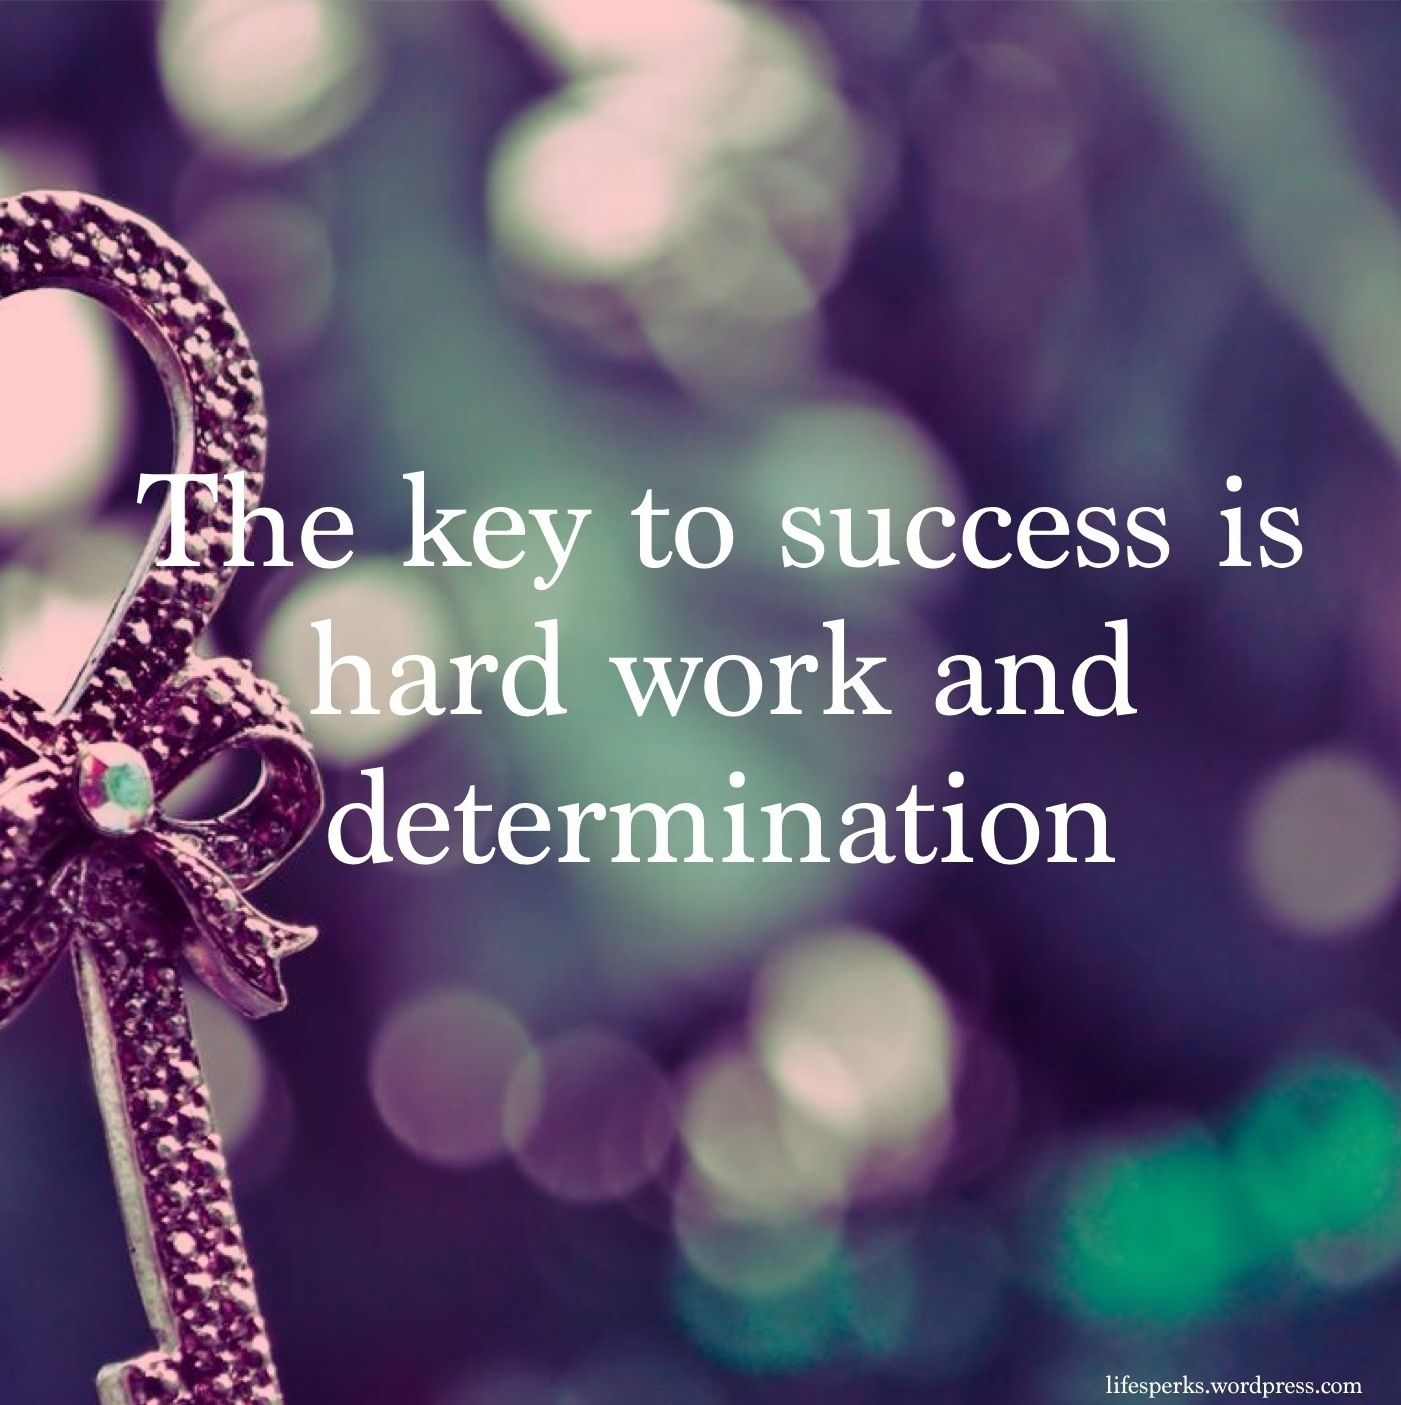 My 5 Favorite Words You Baby I Determination Quotes Famous Quotes About Success Key To Success